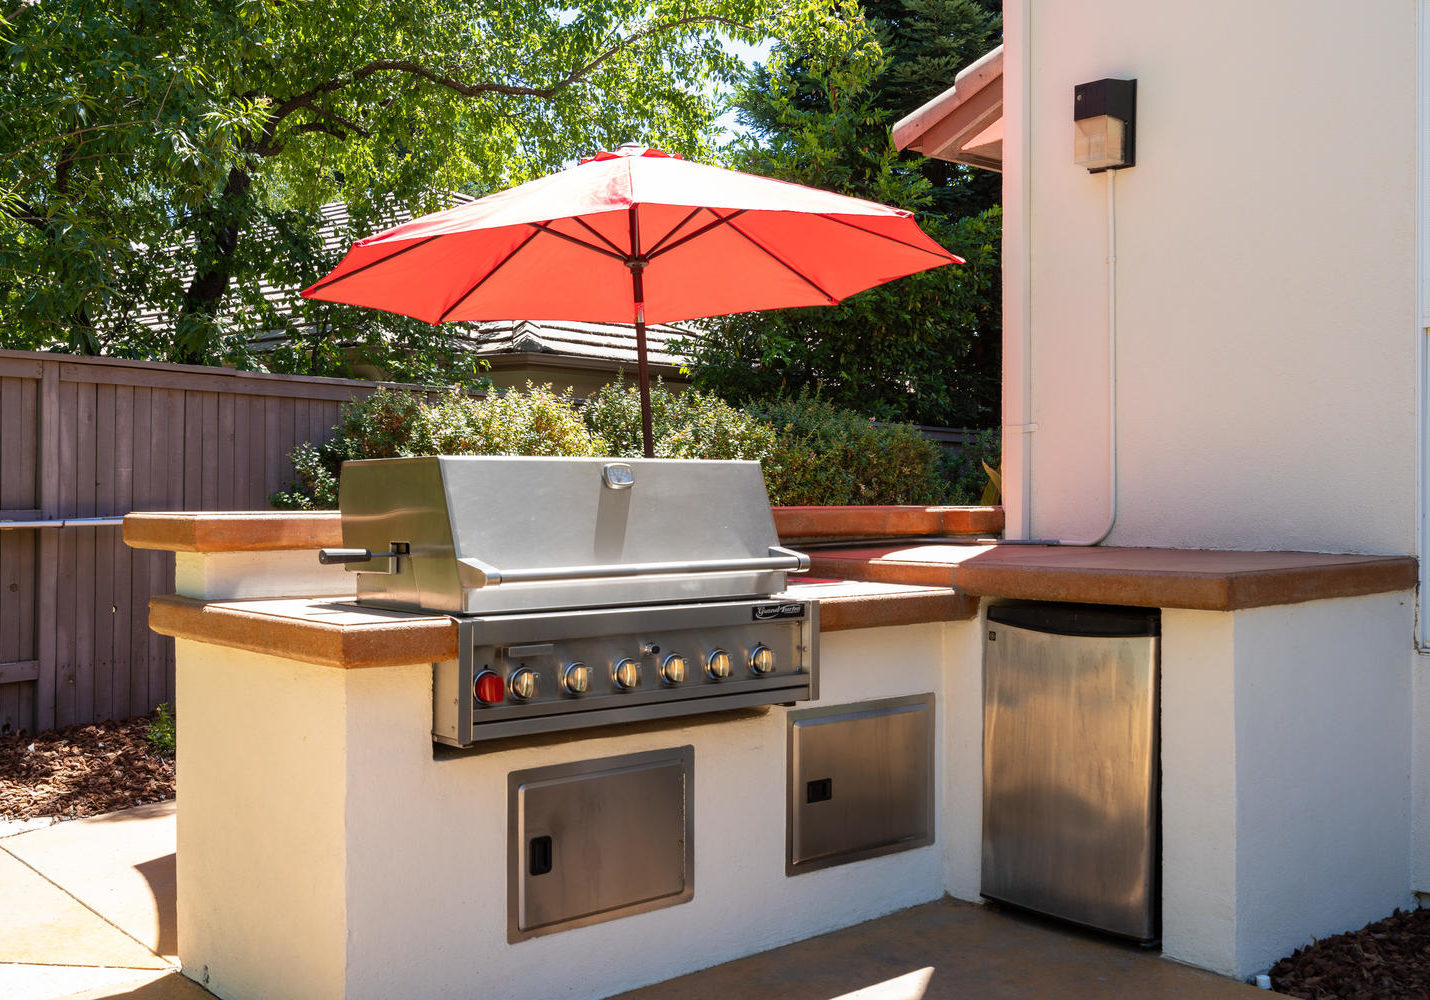 8755 Brookdale Cir Granite Bay-large-046-042-Outdoor Kitchen-1500x1000-72dpi